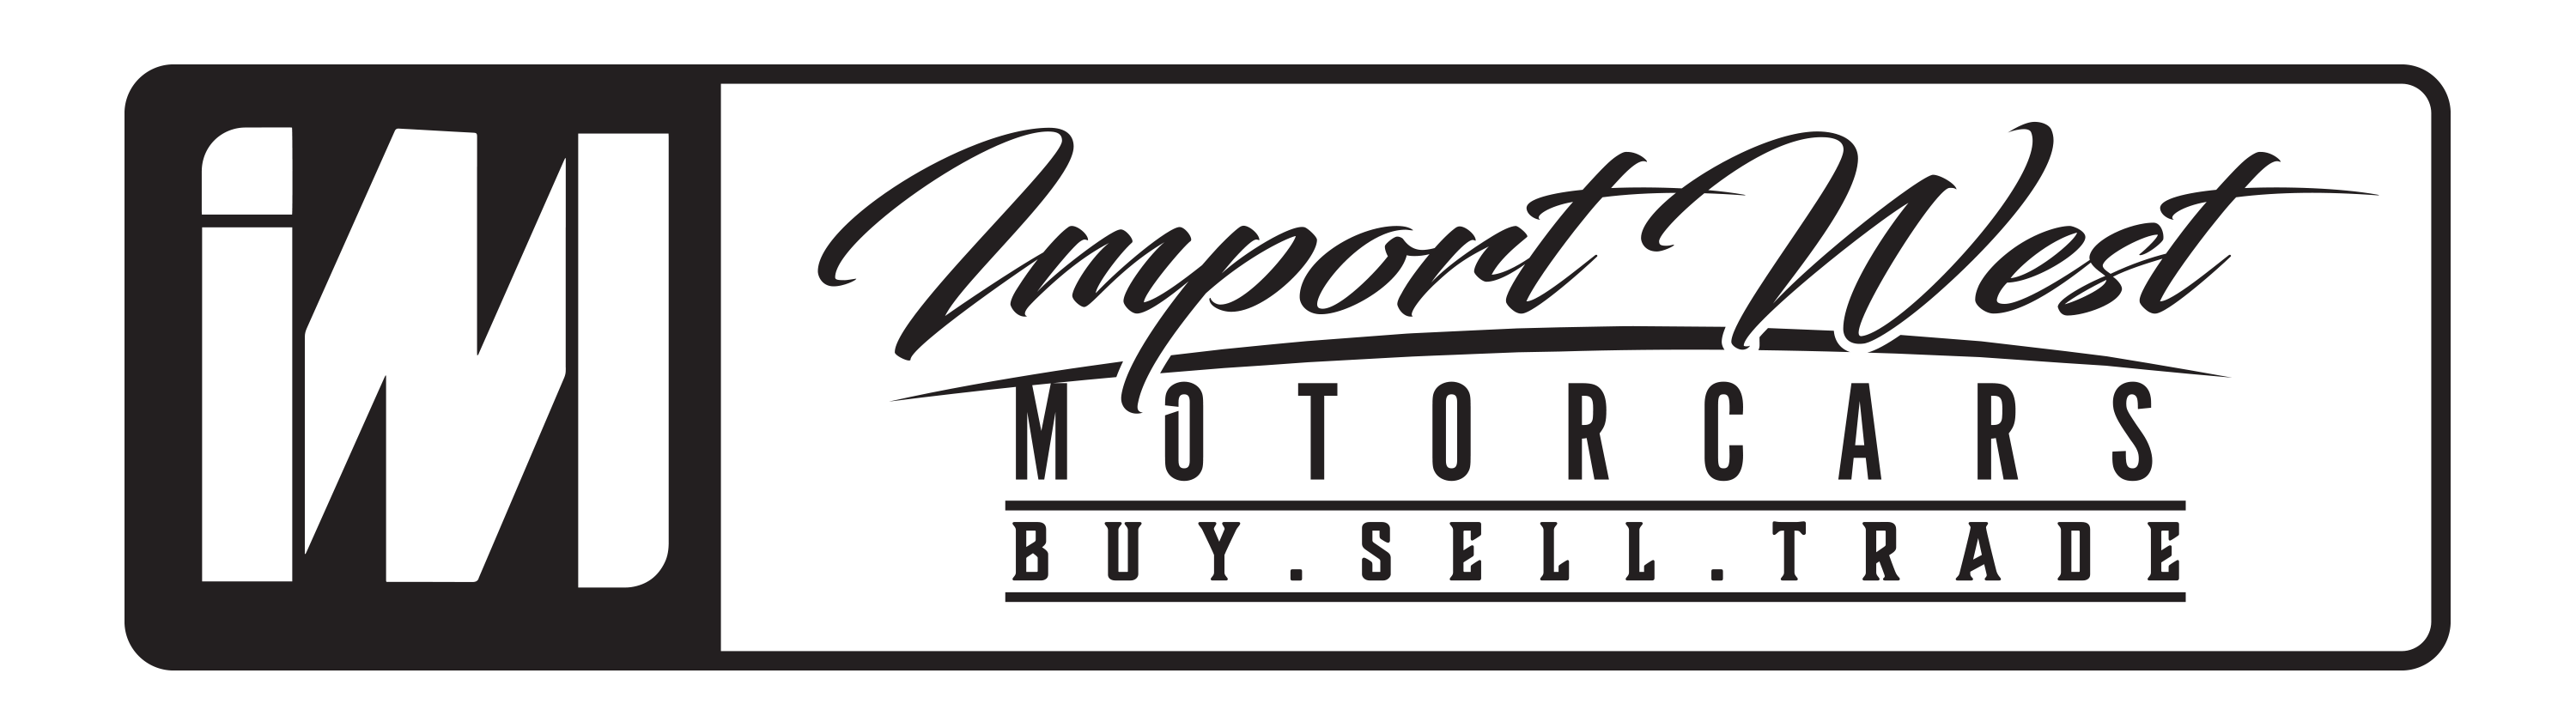 Import West Motorcars Logo